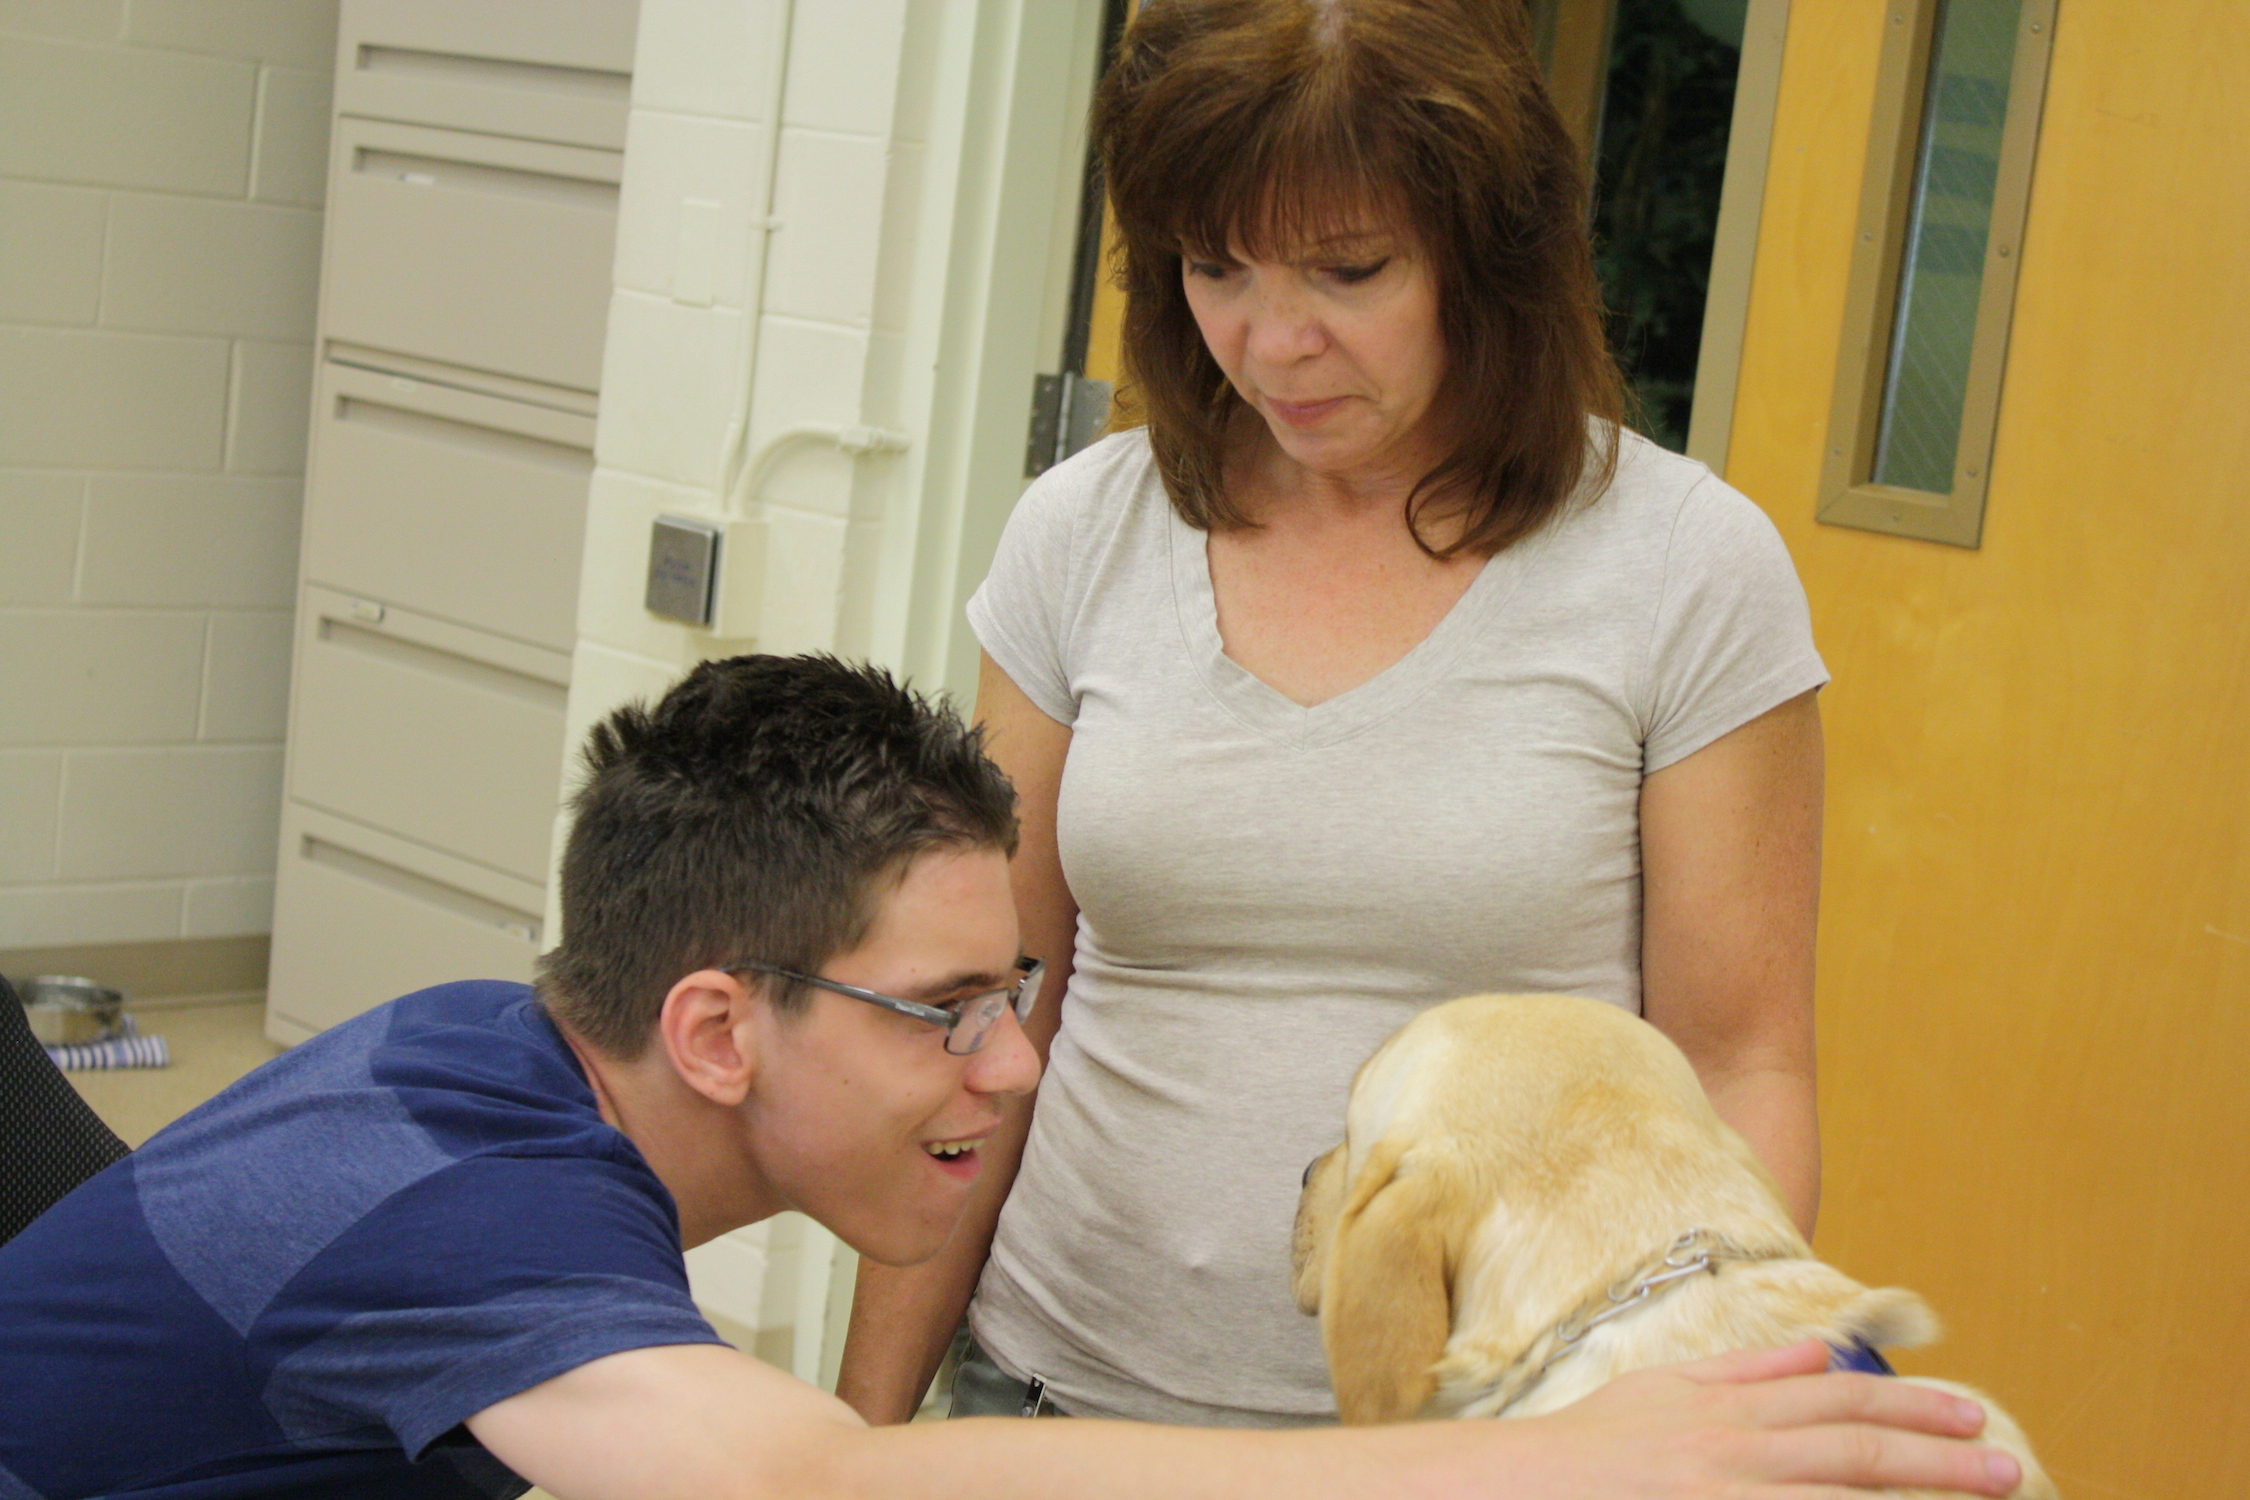 Sean and Lisa Egry with Honey during team training at the CCI campus in Medford.